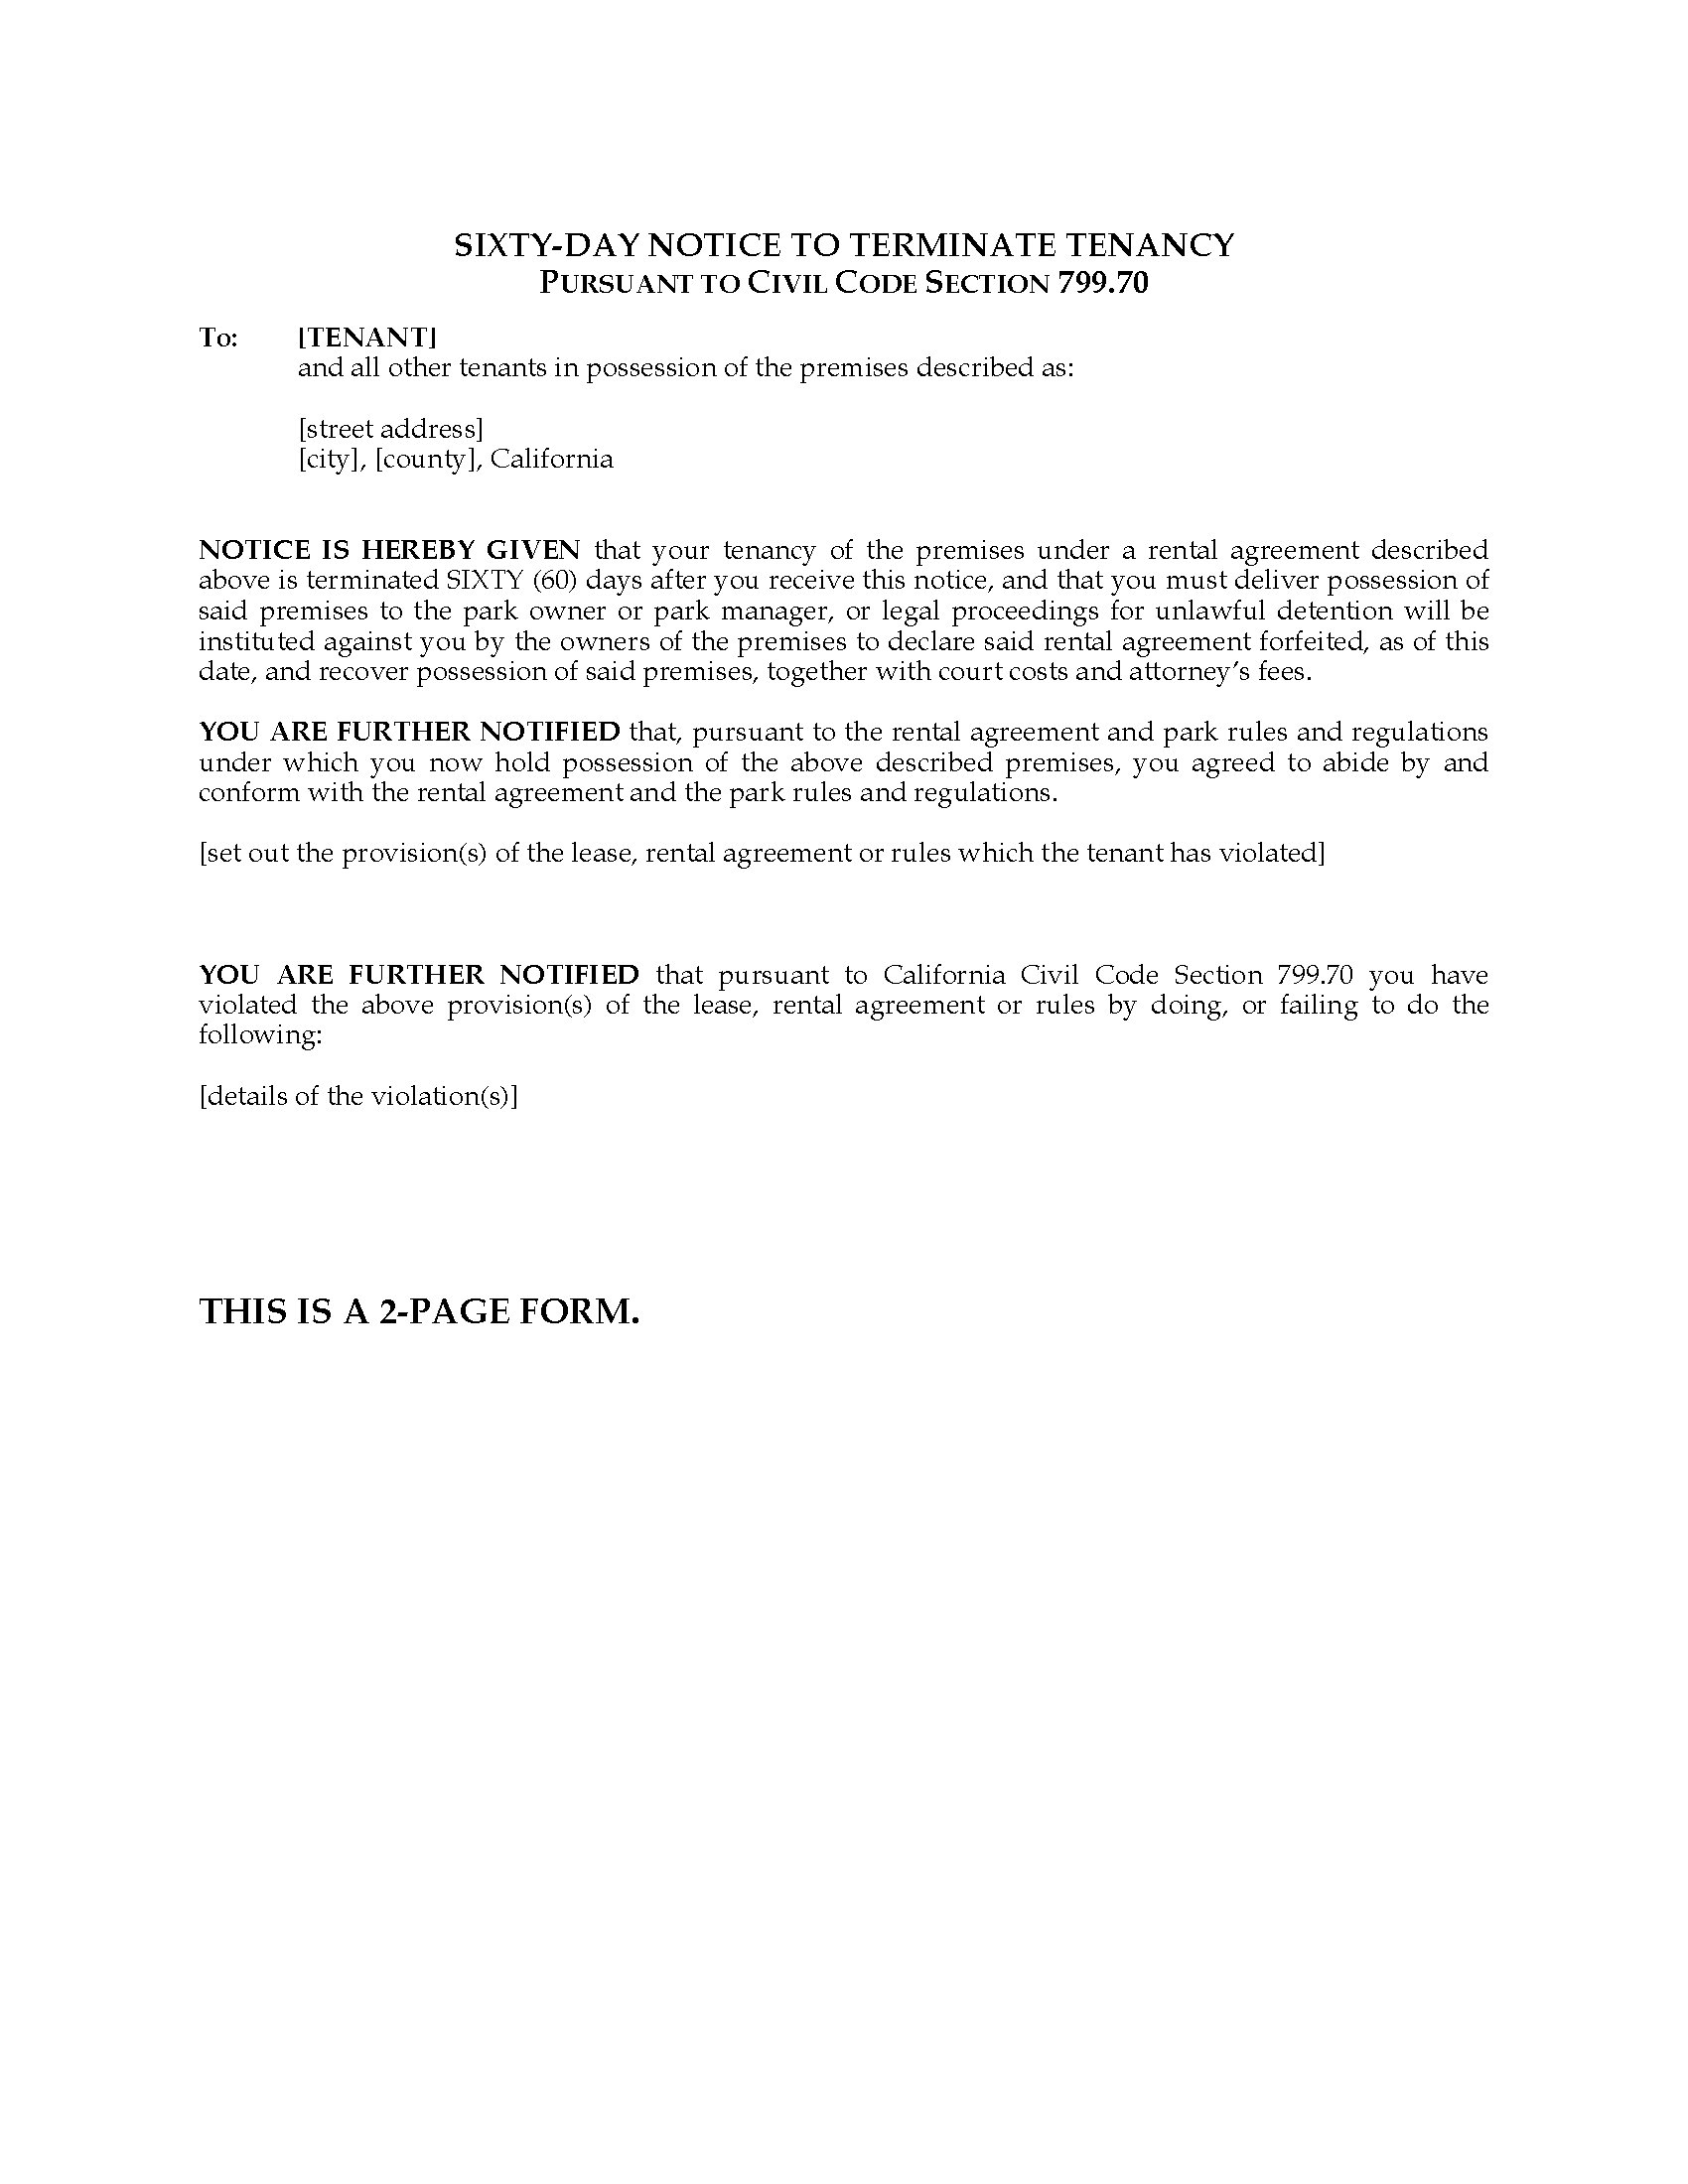 Letter Template Notice To Terminate Tenancy